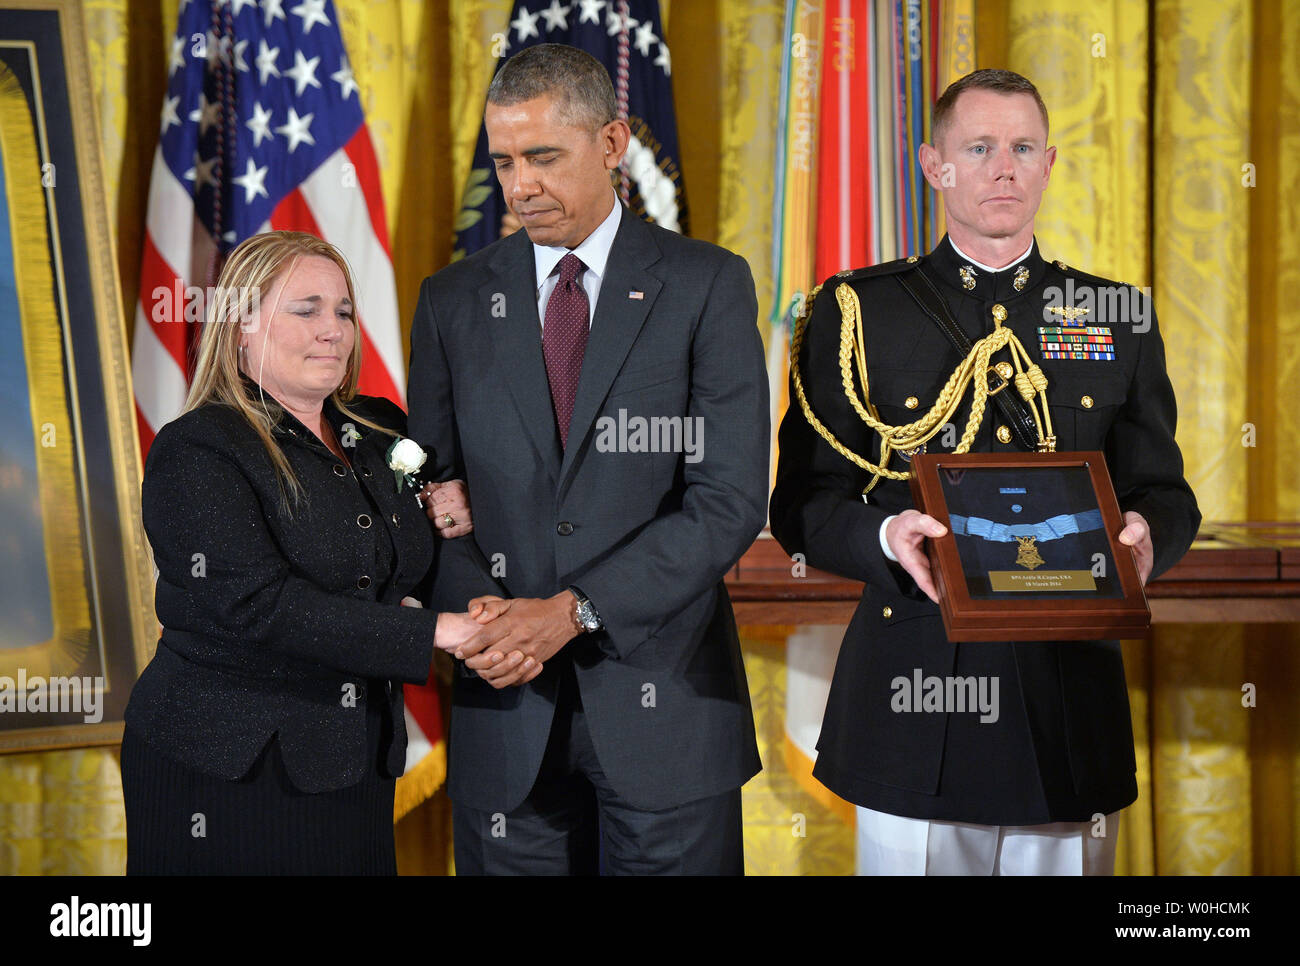 President Barack Obama comforts Shyrell Jean Copas who accepted the Medal of Honor on behalf of her father, Specialist Four Ardie R. Copas during a ceremony in the East Room of the White House in Washington on March 18, 2014. Obama awarded the Medal of Honor to 24 veterans, three of whom are still living, who fought in World War II, the Korean War and the Vietnam War. They were previously denied the prestigious honor due to their Hispanic, black or Jewish backgrounds. UPI/Kevin Dietsch - Stock Image